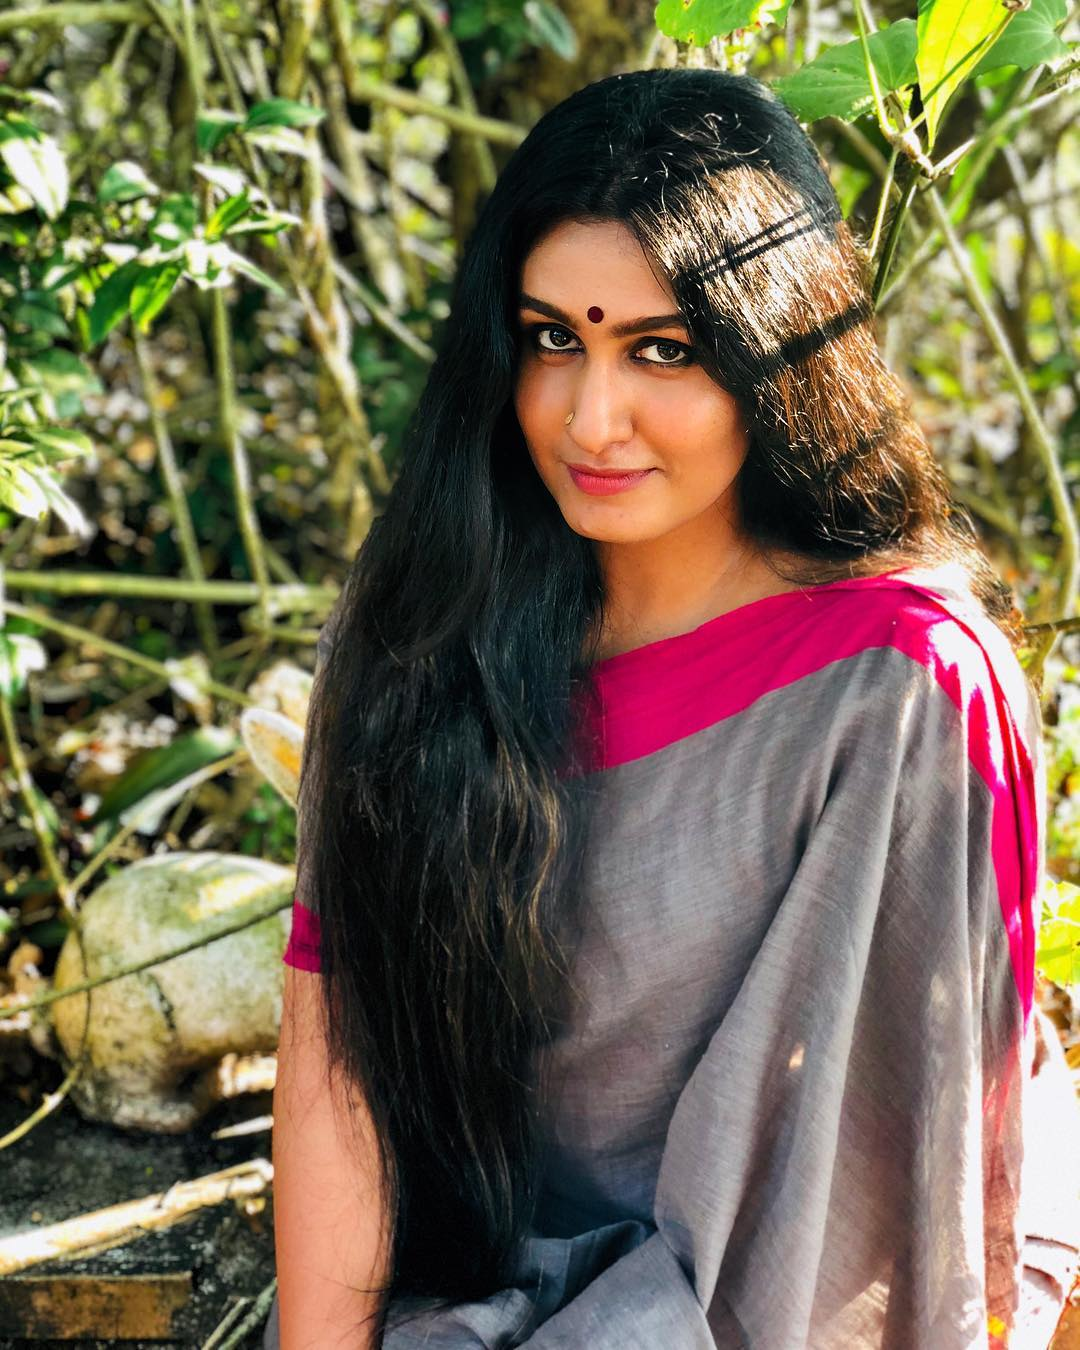 history of malayalam kavitha This really helped me a lot i'm been saved from malayalam homework now my teacher will be happy 🙂.